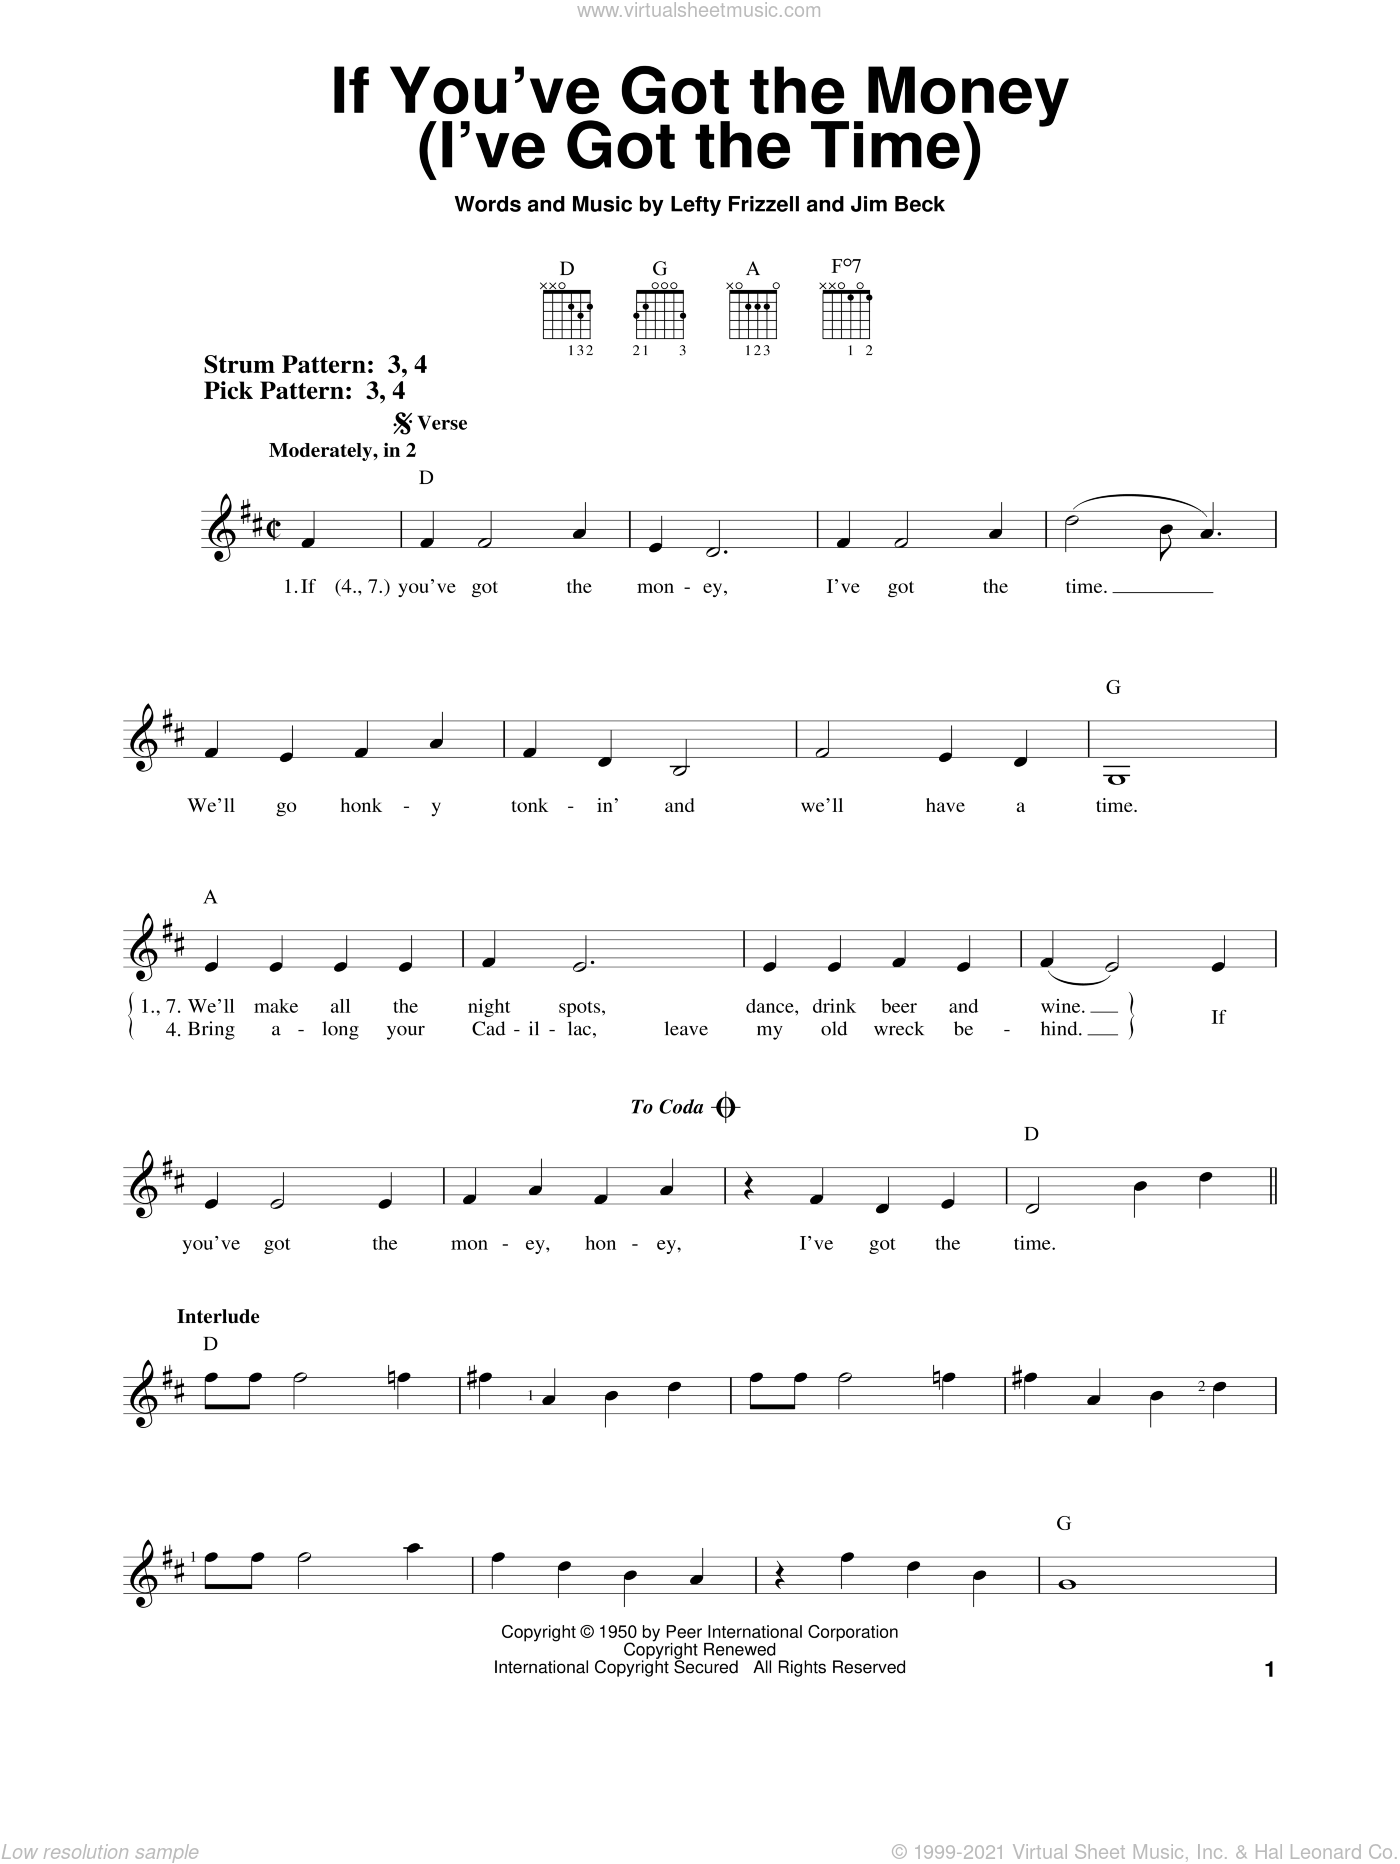 If You've Got The Money (I've Got The Time) sheet music for guitar solo (chords) by Jim Beck, Willie Nelson and Lefty Frizzell